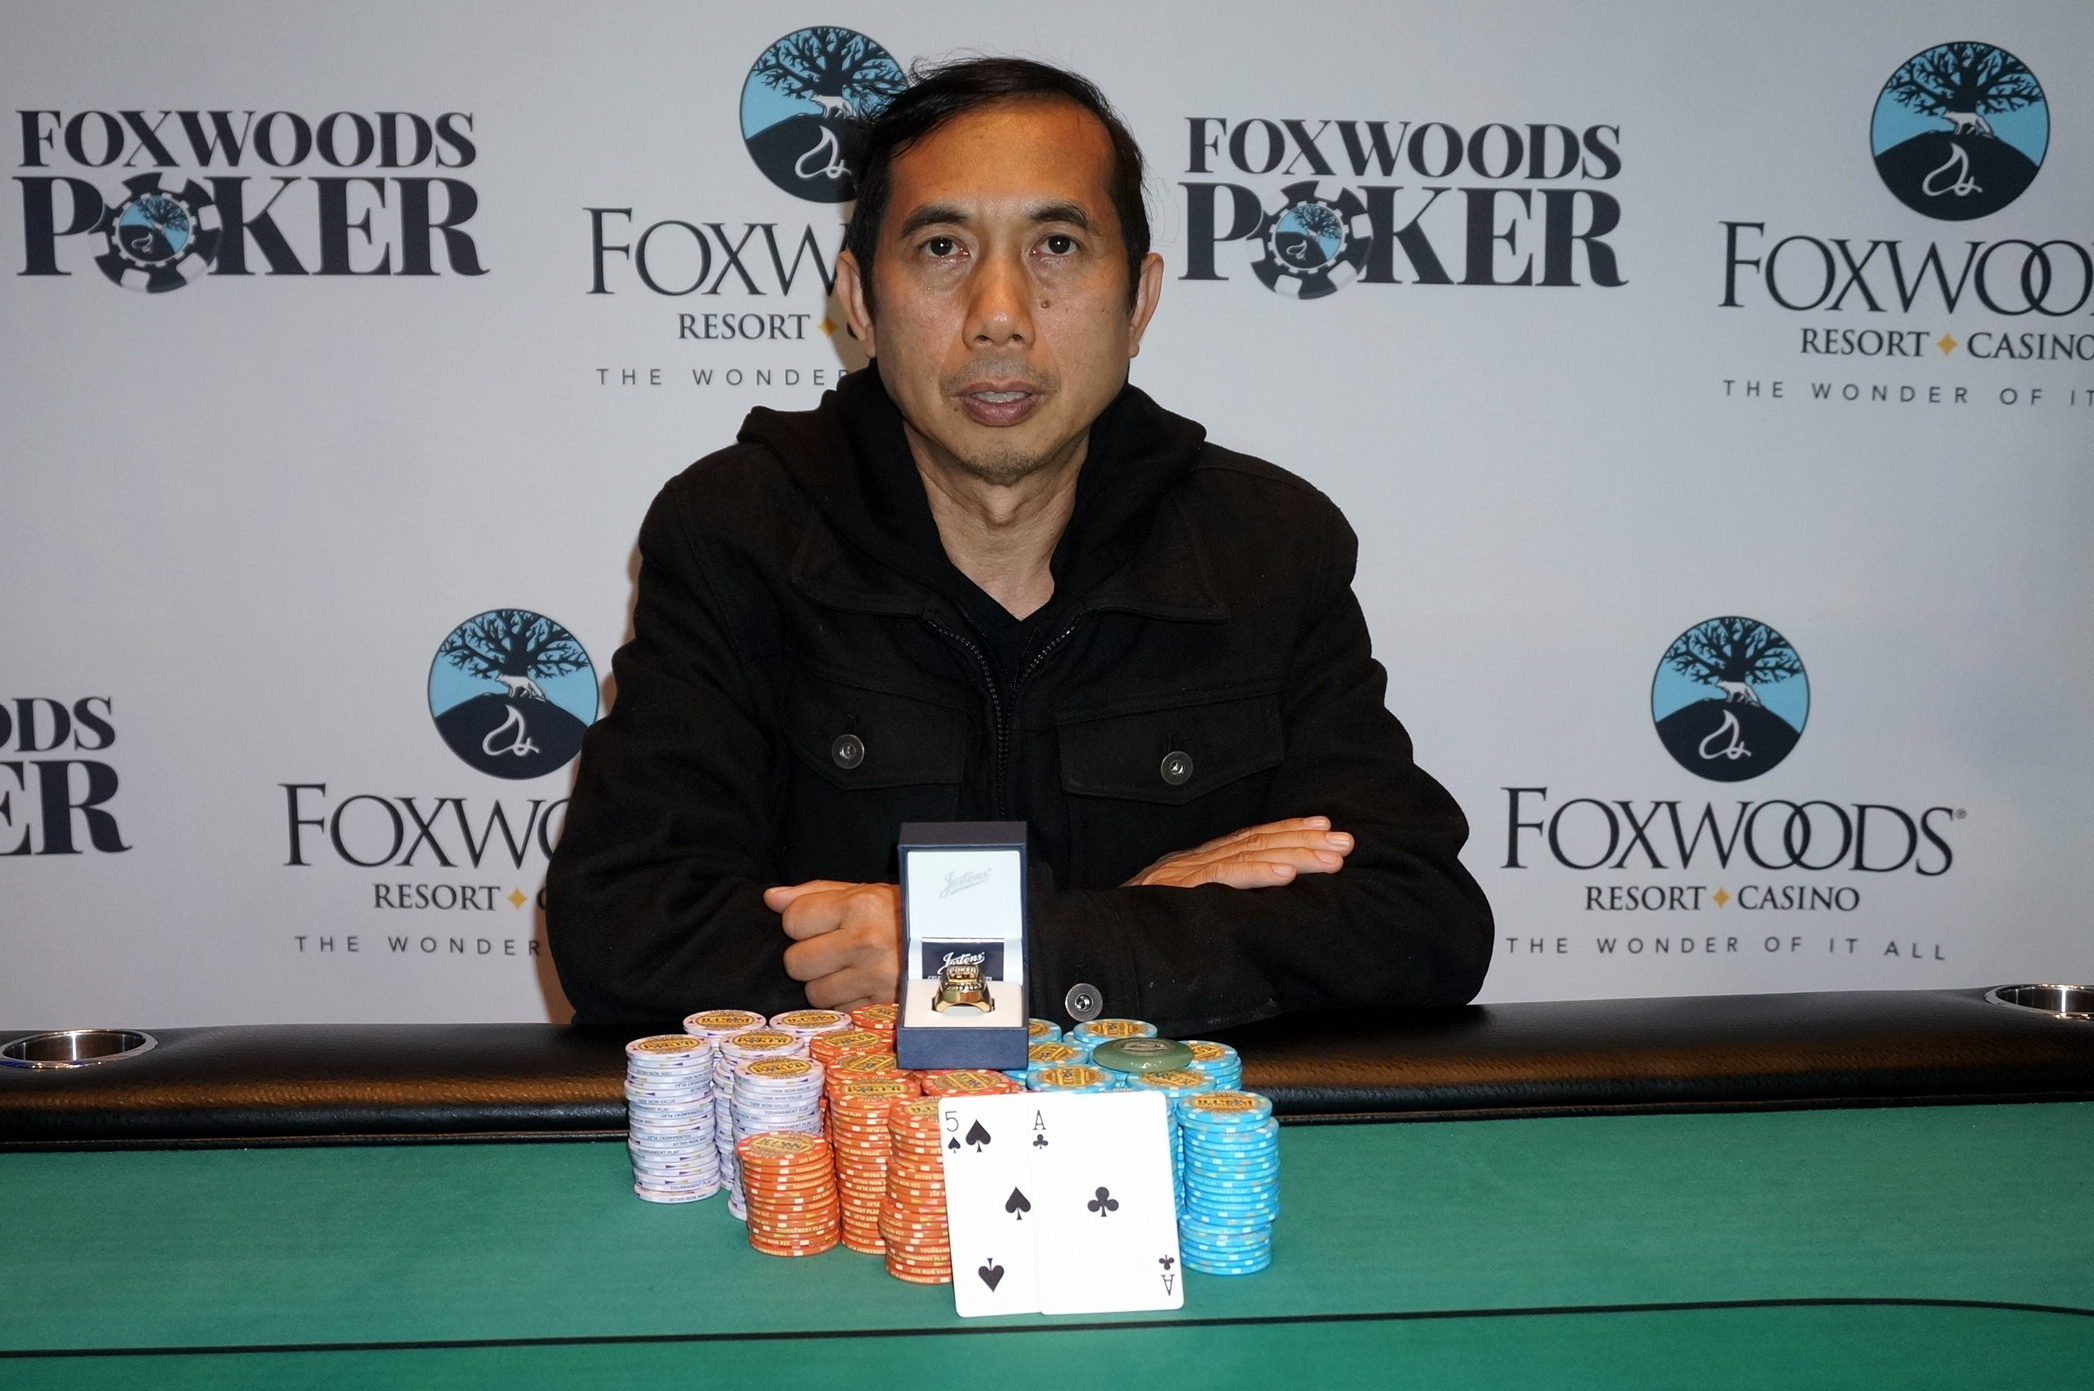 Foxwoods daily poker tournament results rules of american roulette